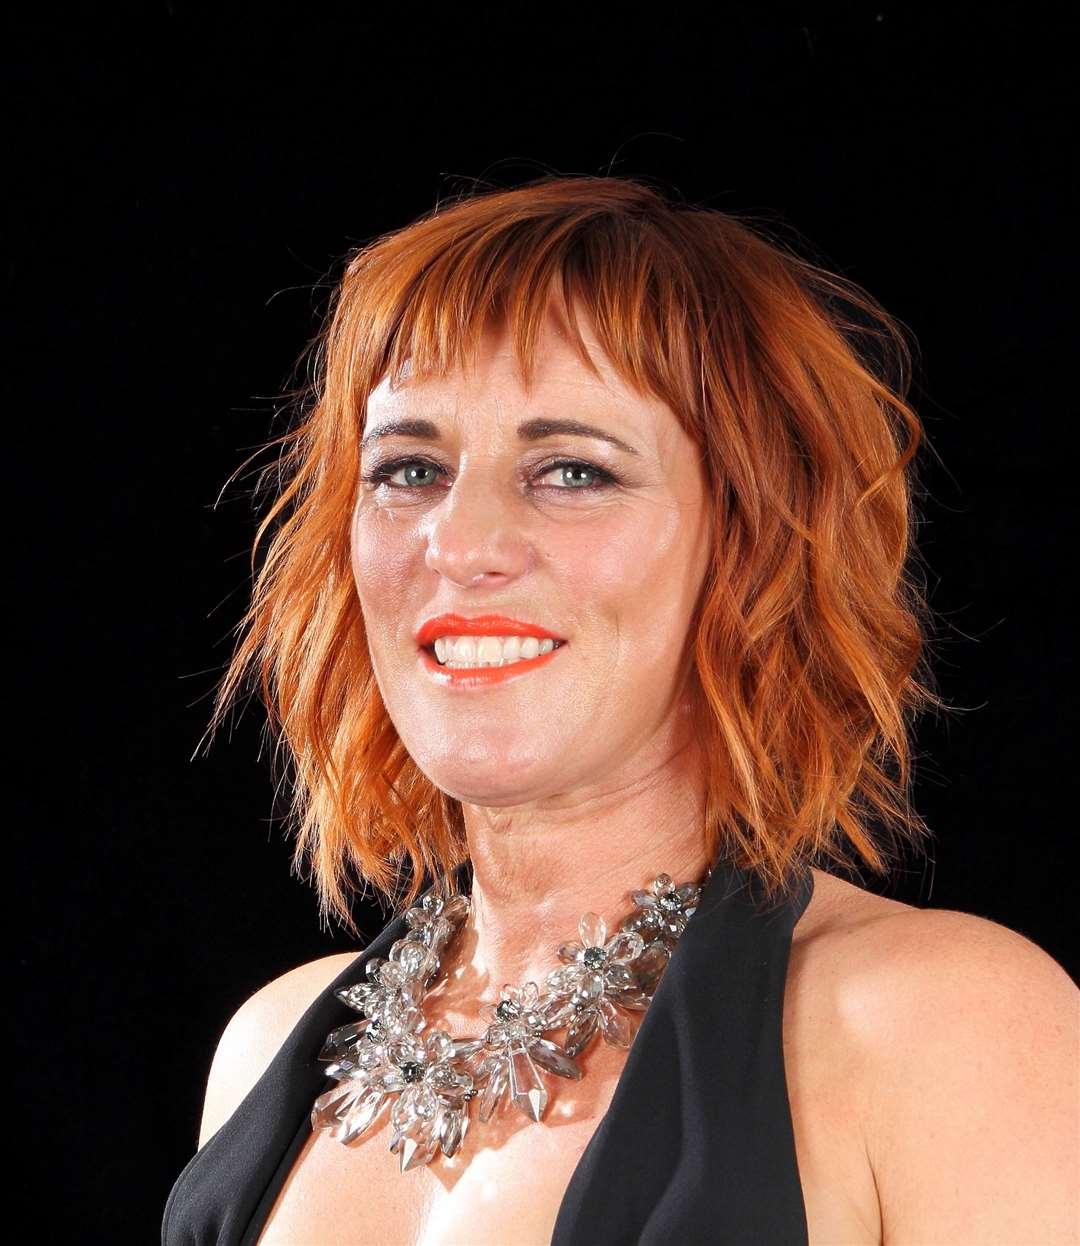 KAM owner Karen Thomson, who is the current Scottish Hairdresser of the Year.